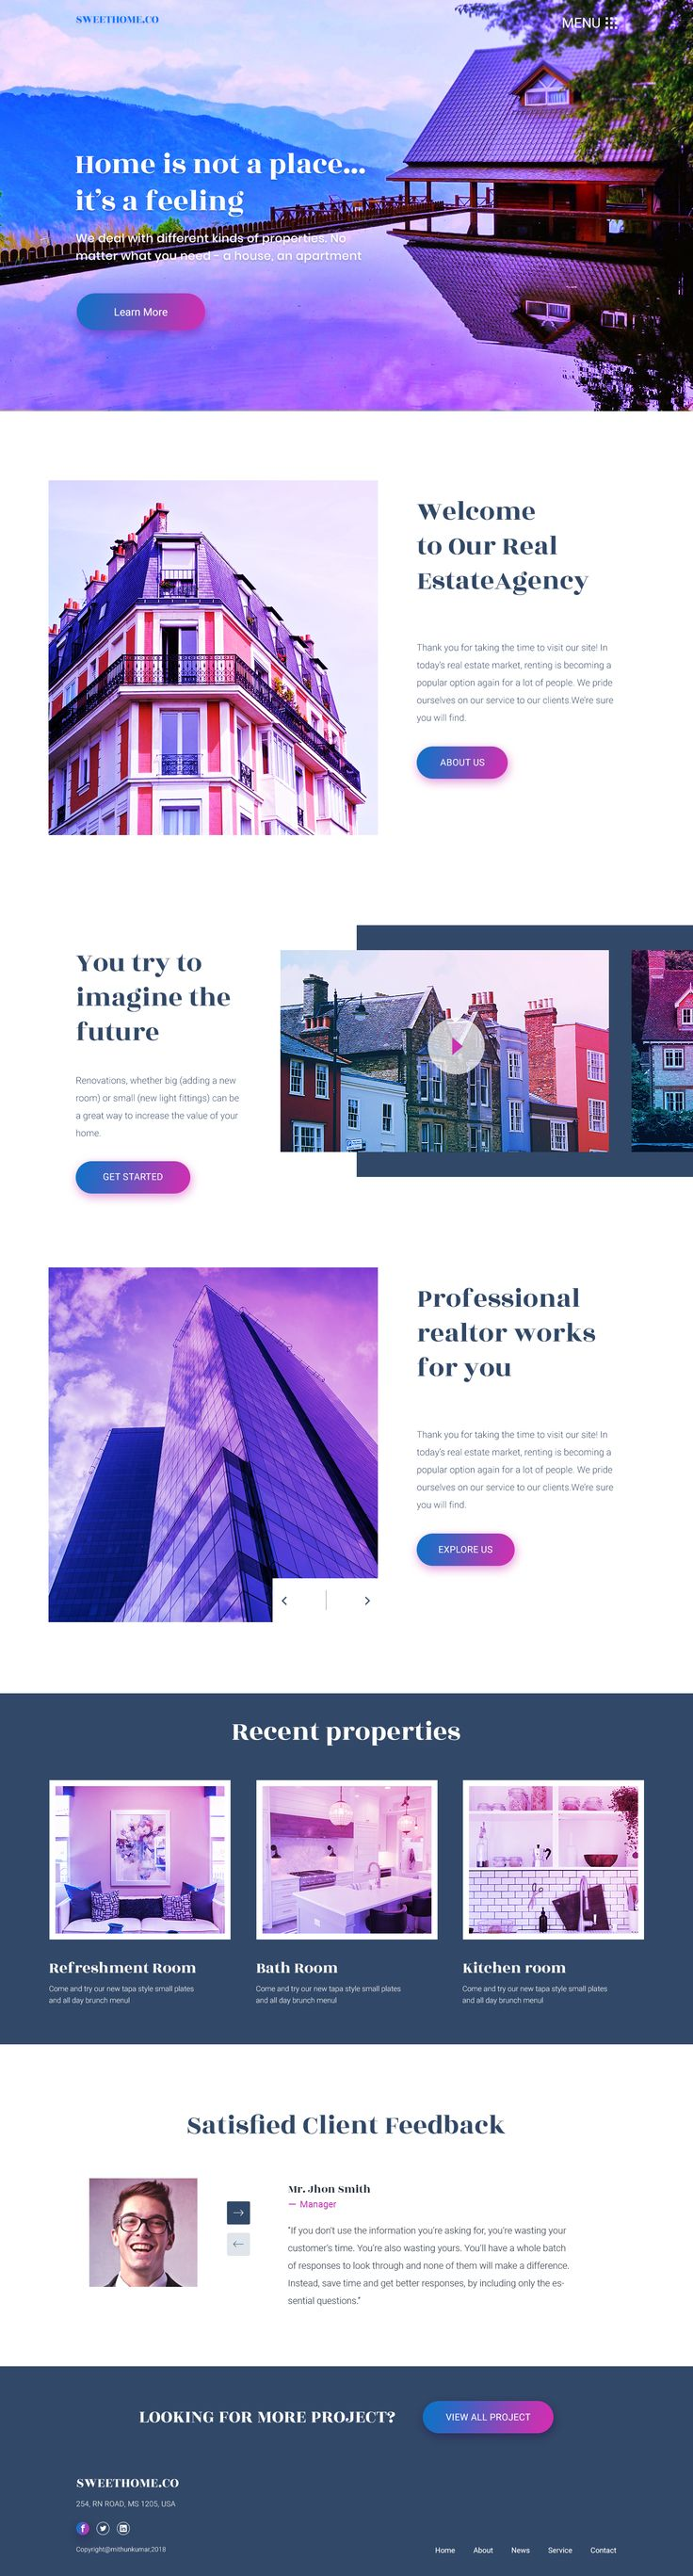 Real estate landing page experiment